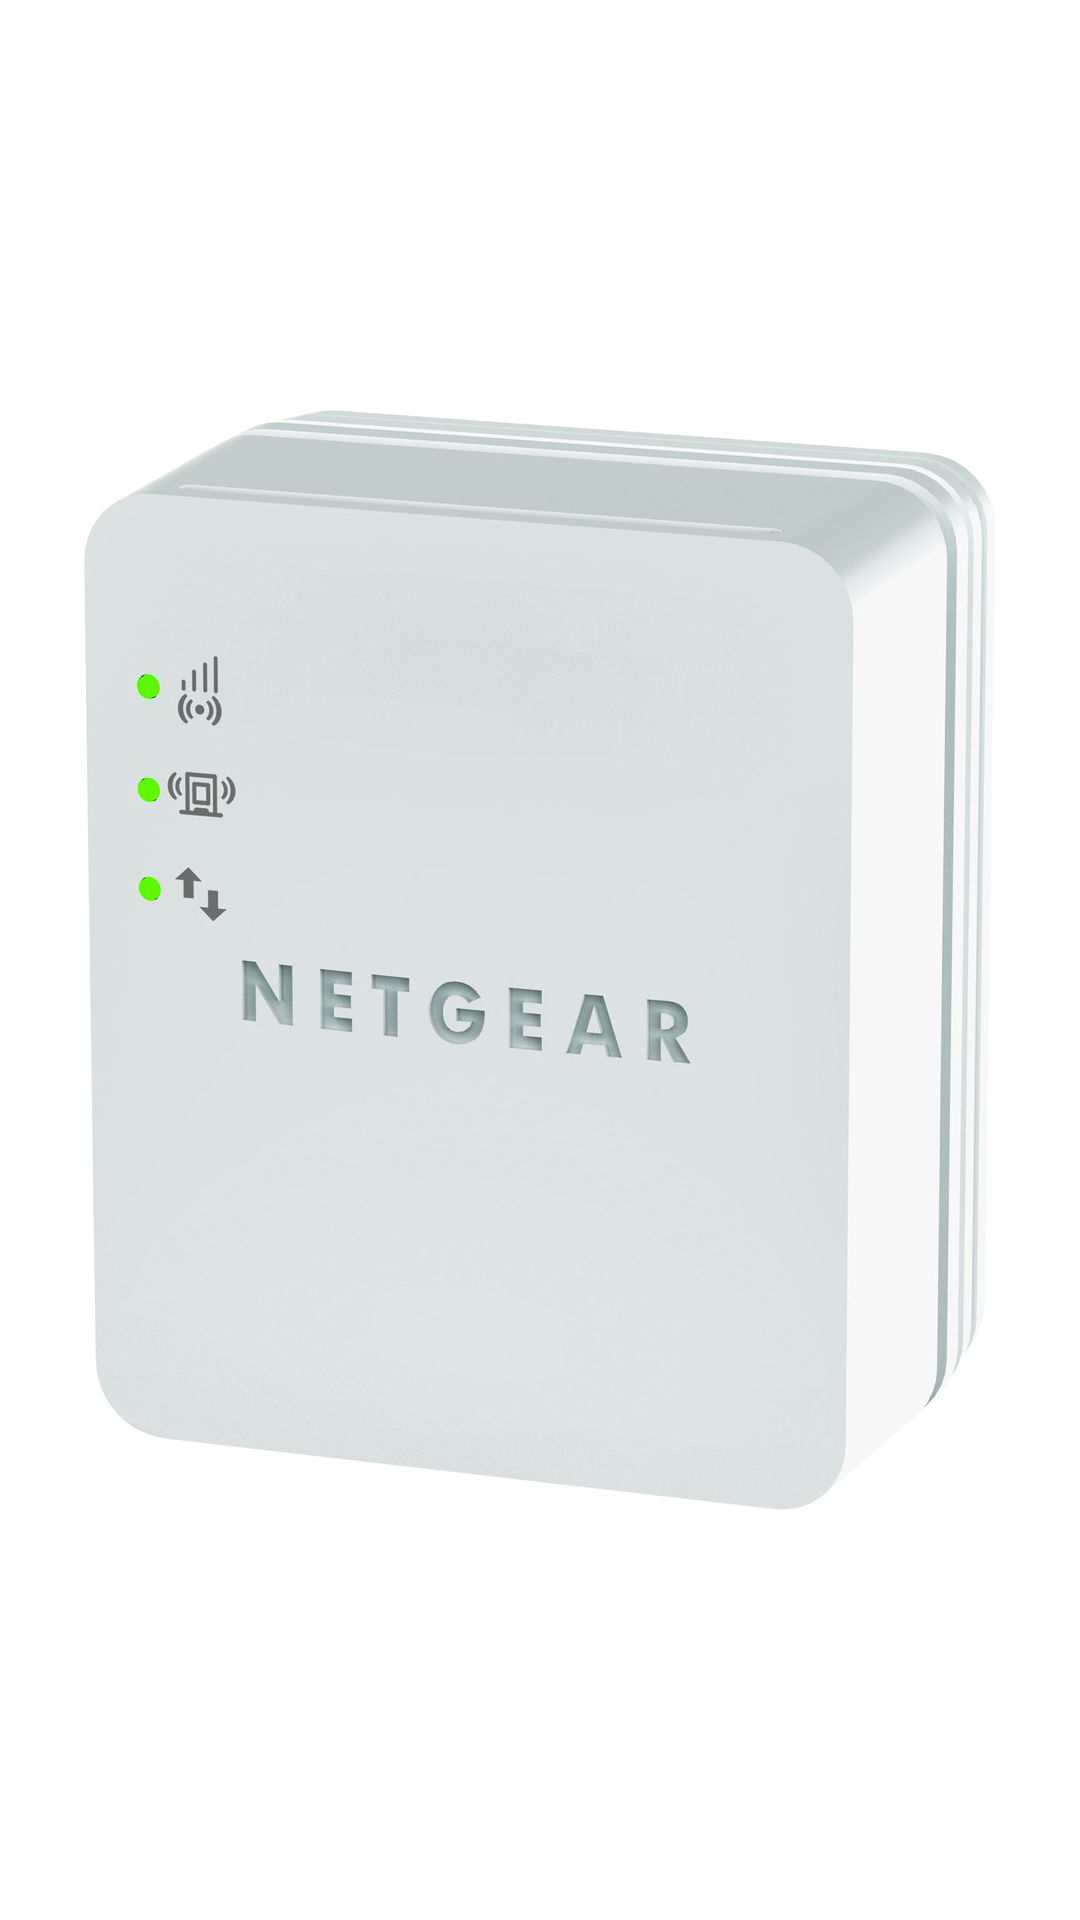 Netgear WN1000RP Wi-Fi Booster Range Extender For Mobile (White)